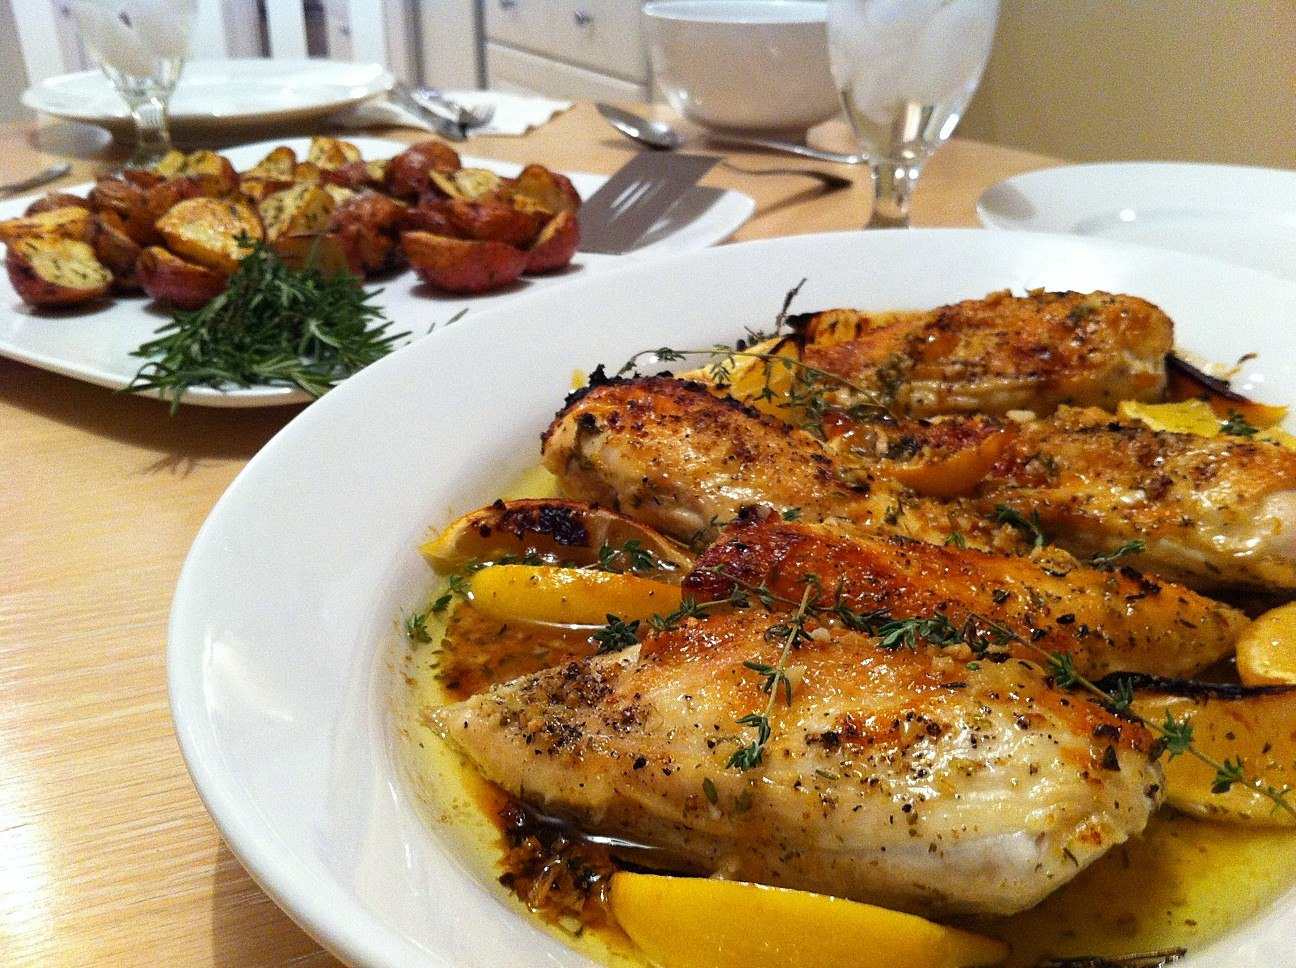 Lemon herb baked chicken 3